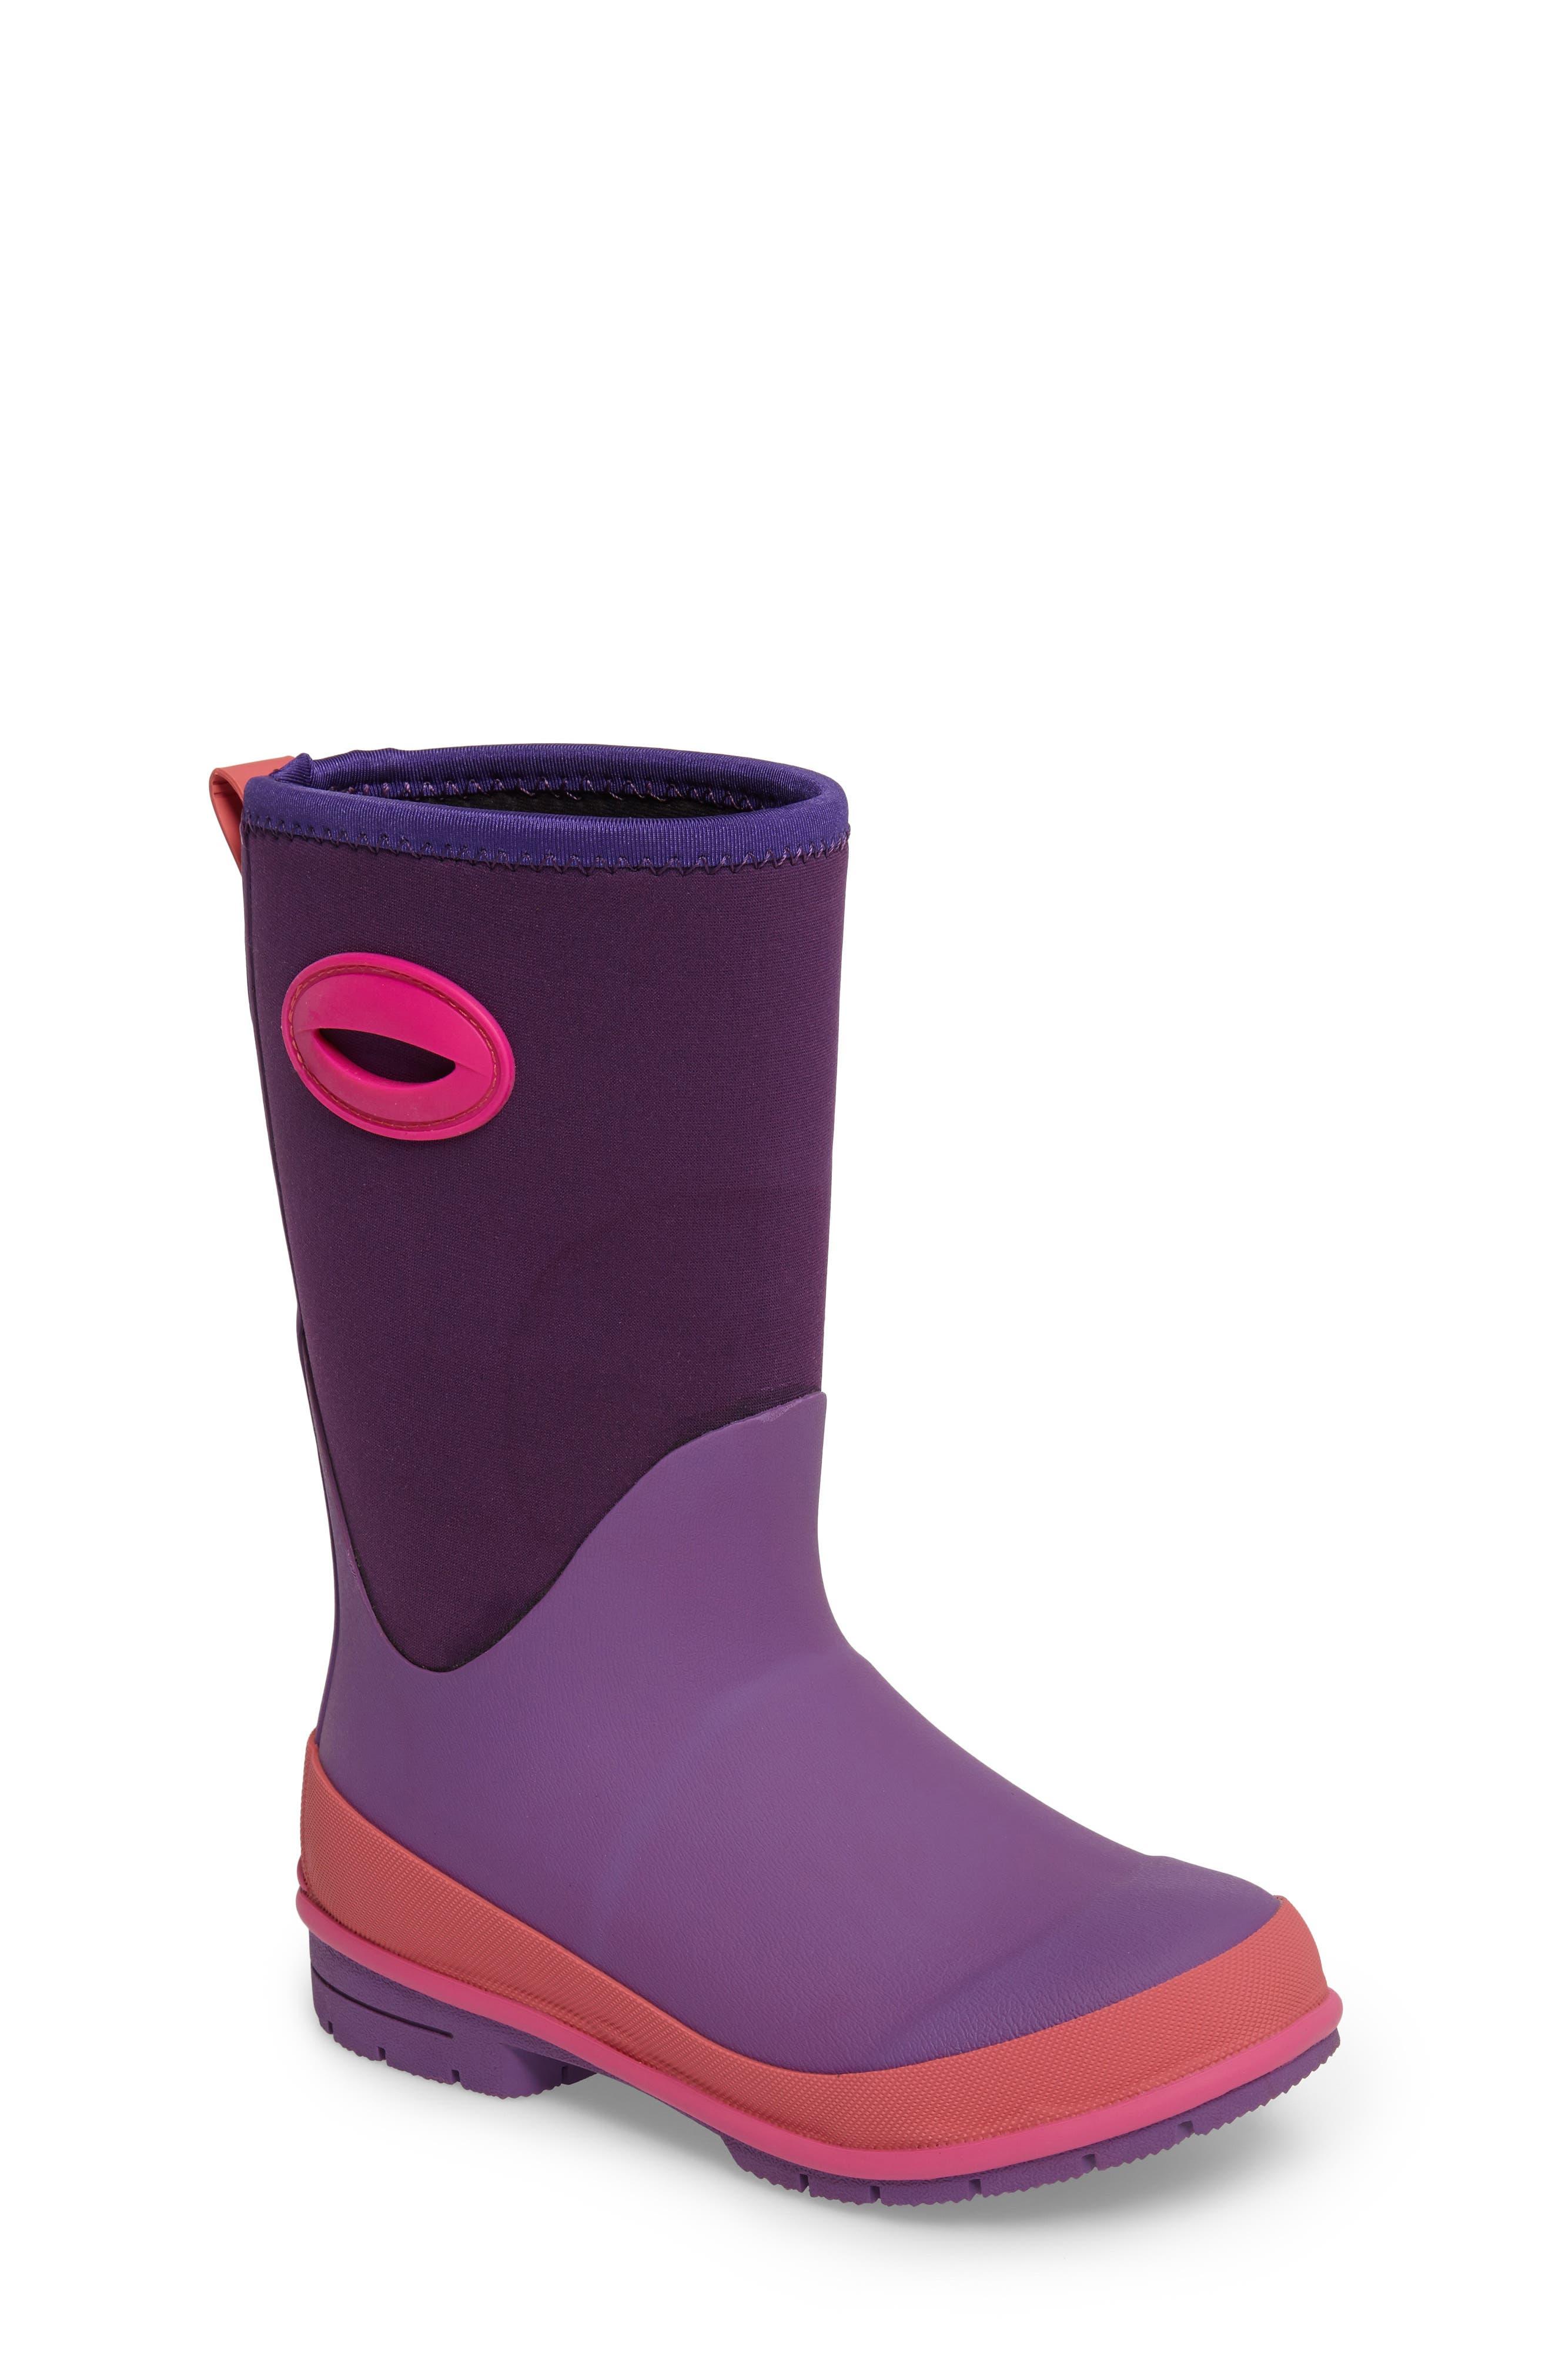 Neoprene Purple Snow Boot,                             Main thumbnail 1, color,                             511